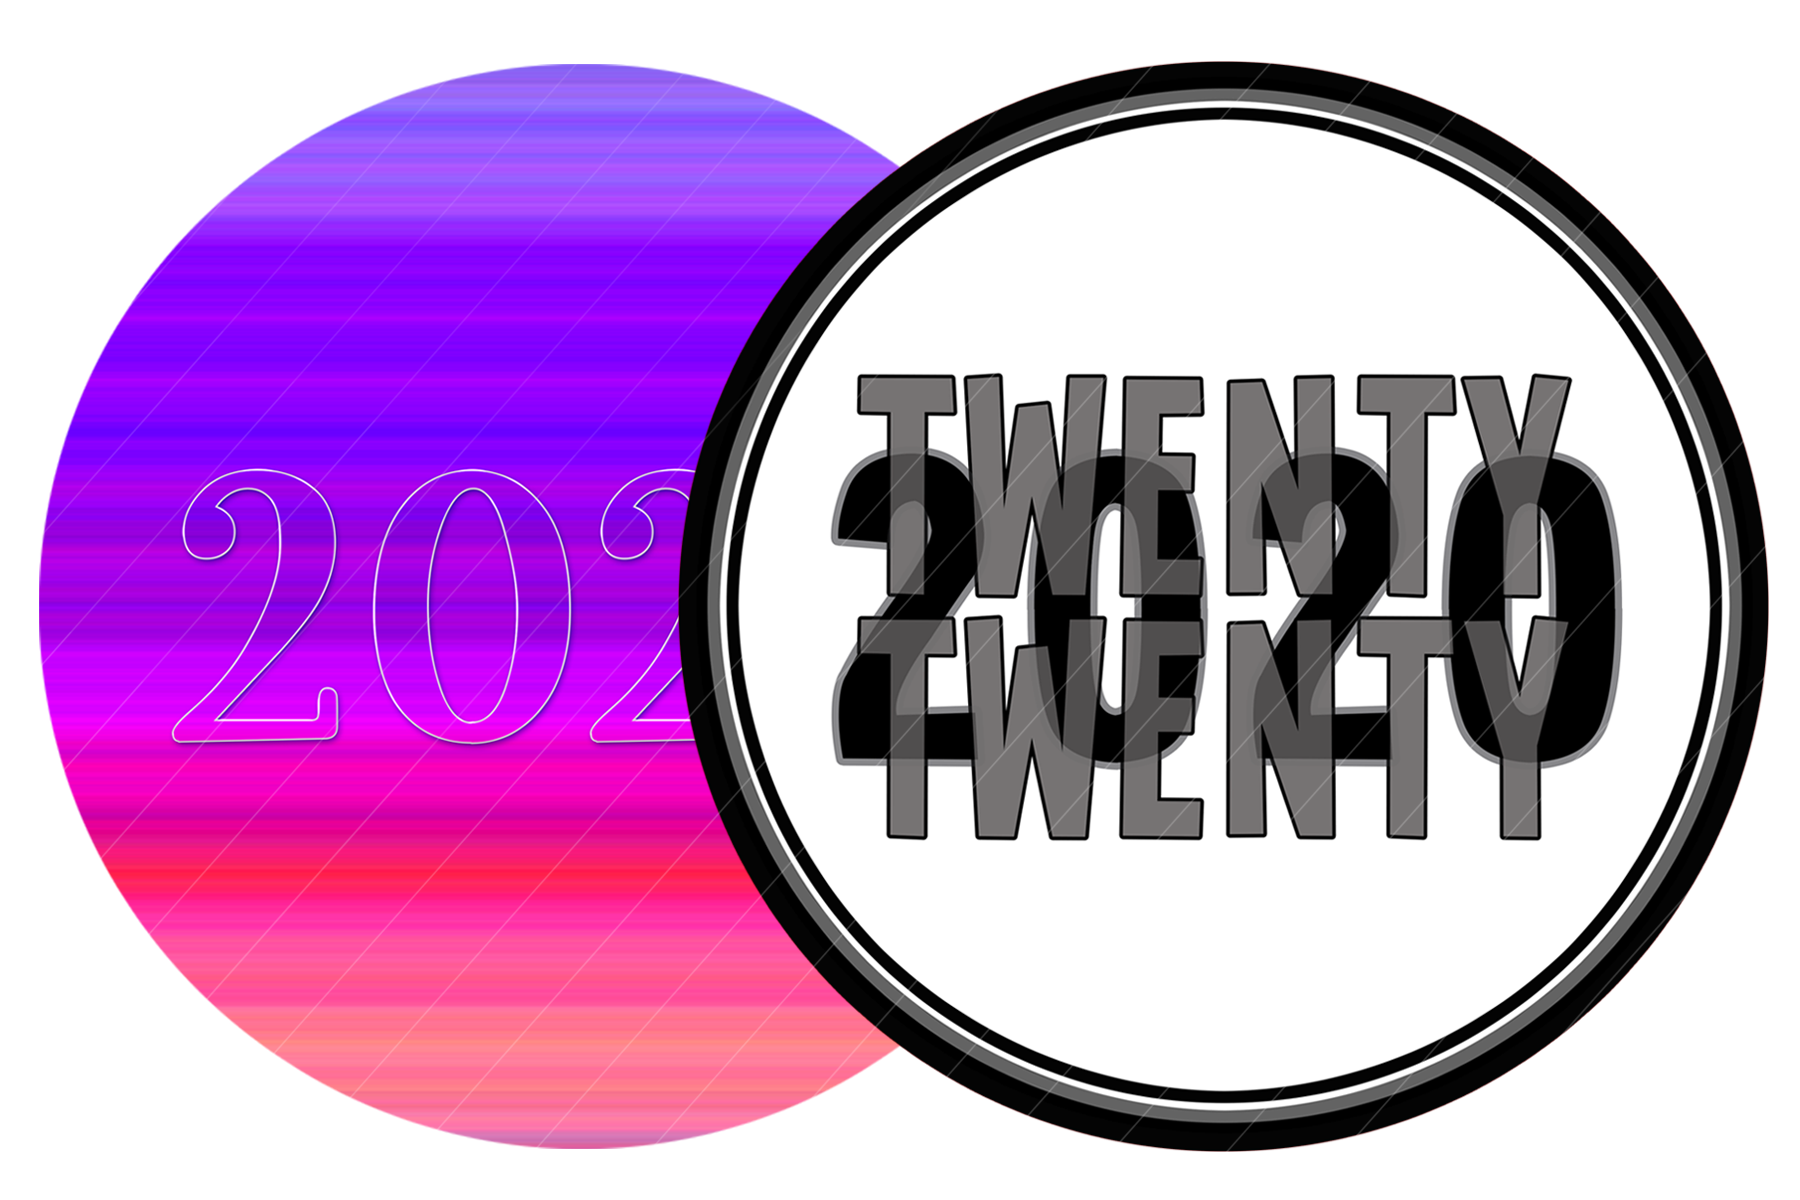 2020 New Year Designs for PRINTING, High Resolution example image 7